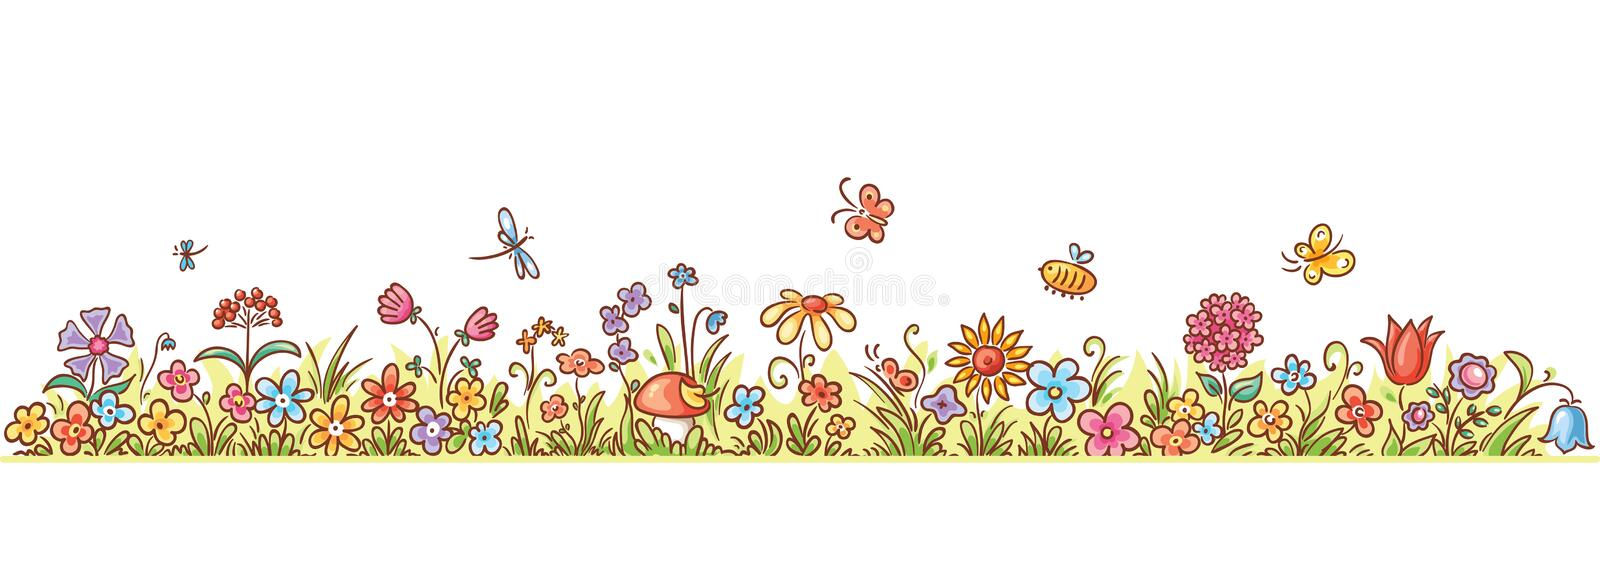 download horizontal cartoon flower border stock vector image 50030449